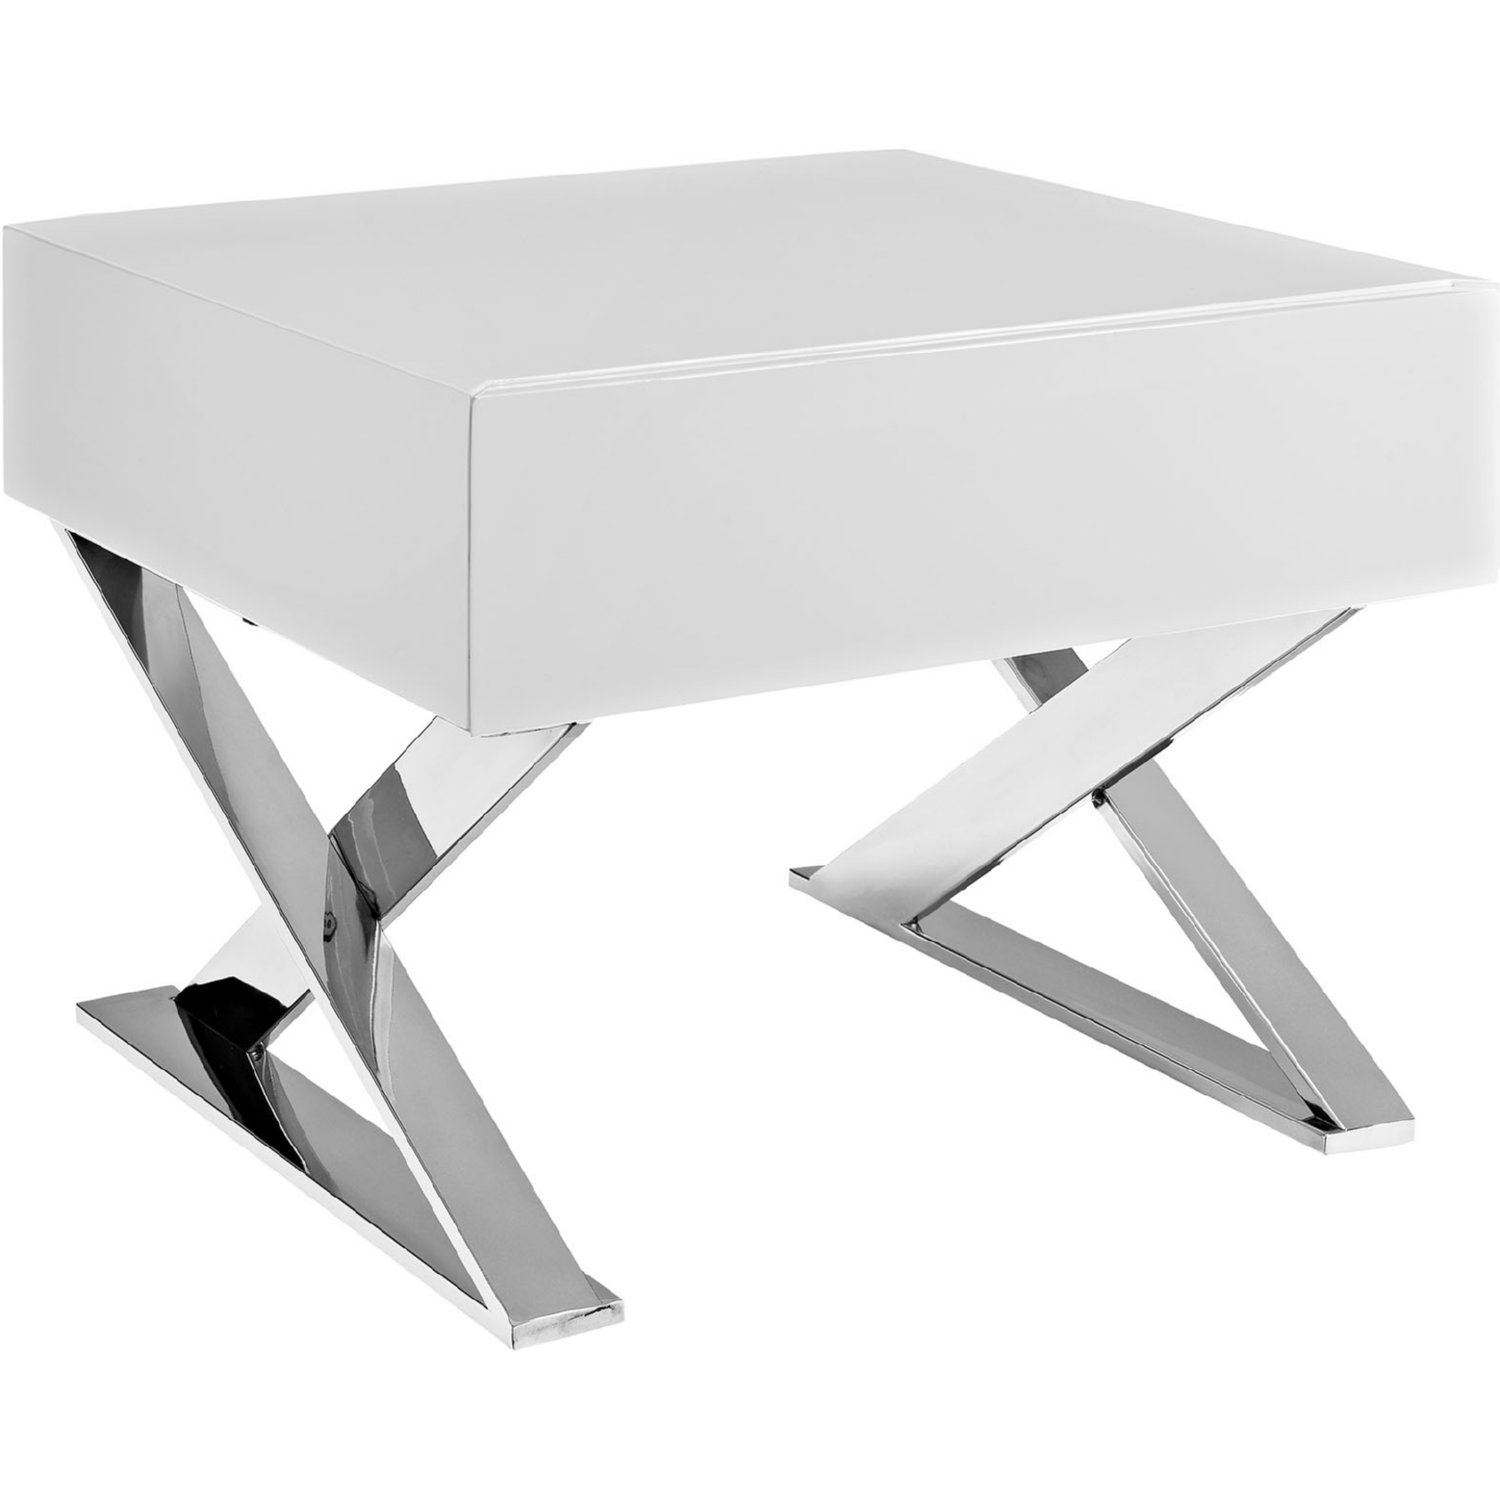 Sector Nightstand In High Gloss White On Polished Stainless Steel Legs By Modway